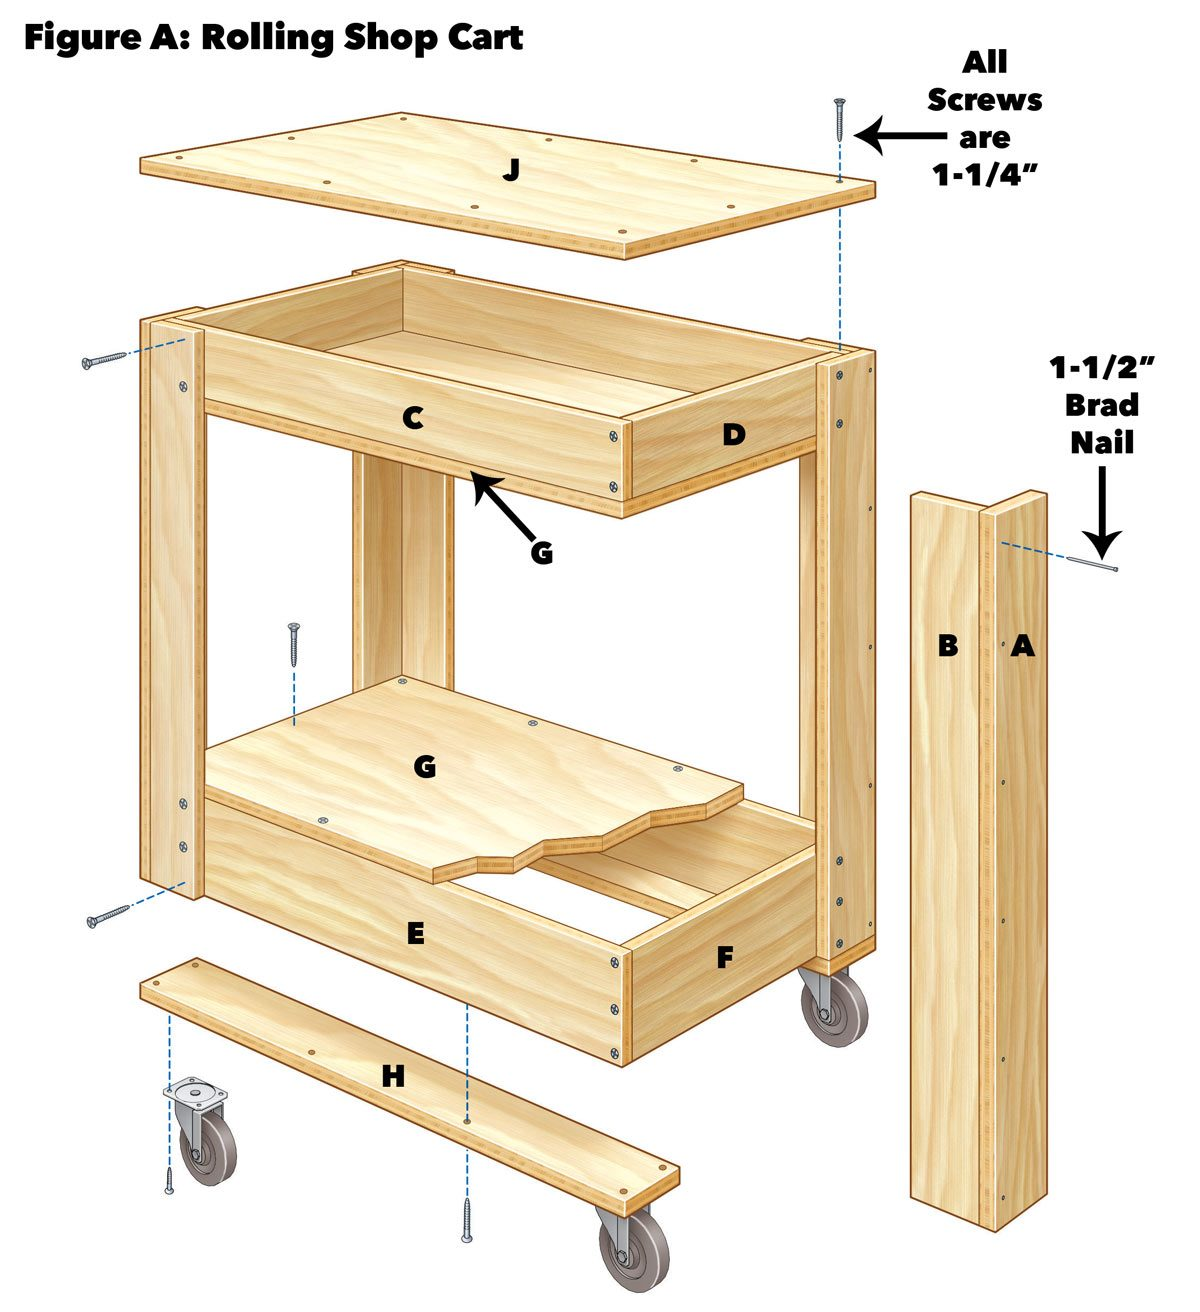 You can use your cart to support your table saw work, so build your cart the same height as your saw. If you want to do the same, buy the casters for ...